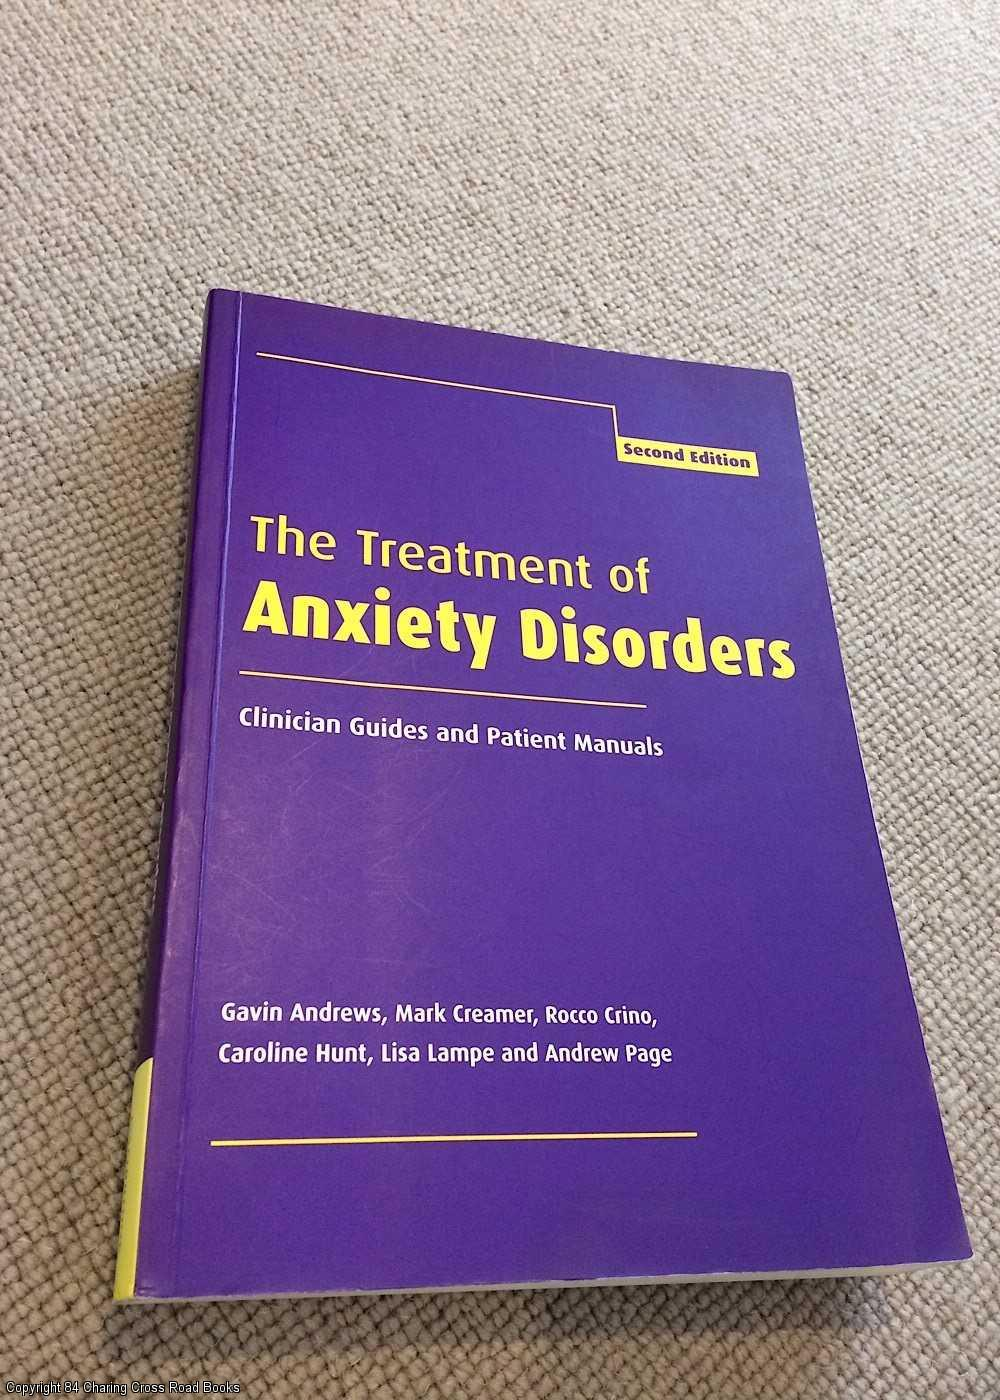 ANDREWS, GAVIN - The Treatment of Anxiety Disorders: Clinician Guides and Patient Manuals